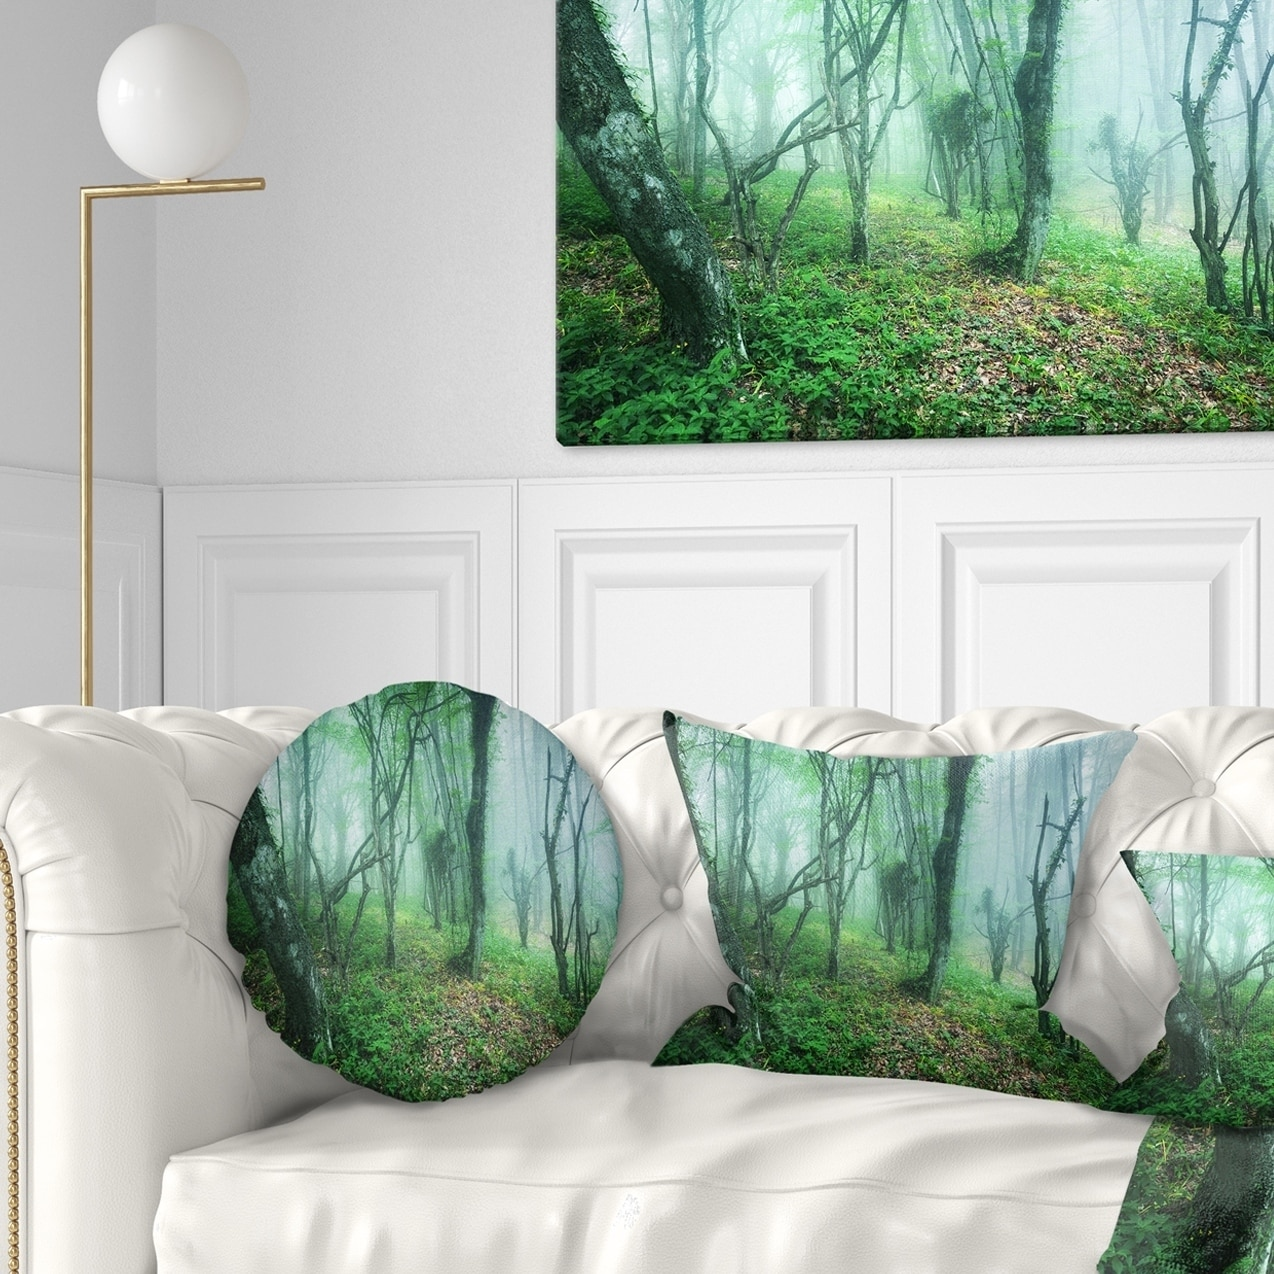 Design Art Designart Trail Through Green Forest Landscape Photography Throw Pillow Walmart Com Walmart Com